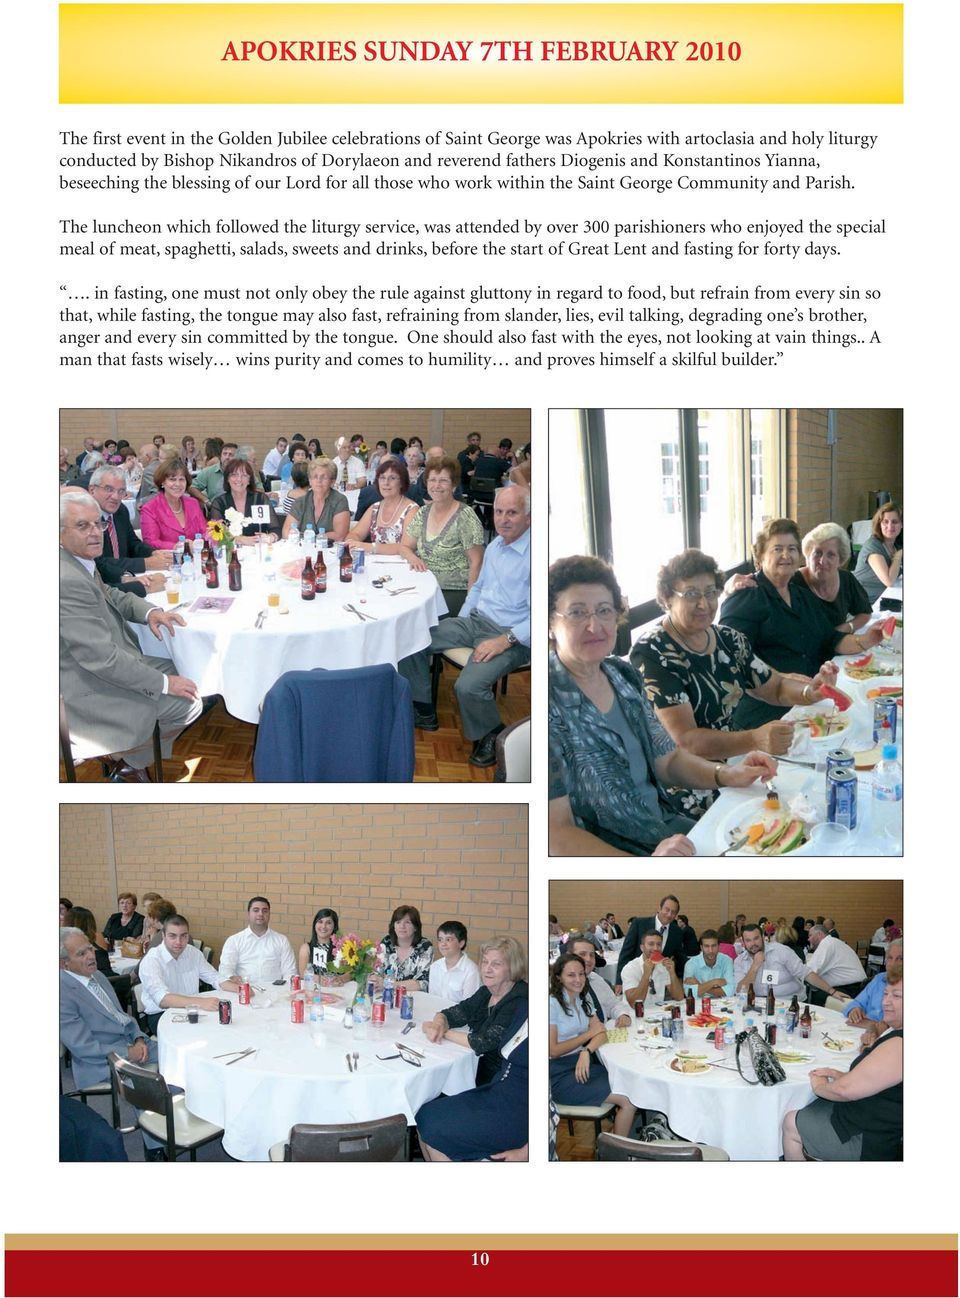 The luncheon which followed the liturgy service, was attended by over 300 parishioners who enjoyed the special meal of meat, spaghetti, salads, sweets and drinks, before the start of Great Lent and